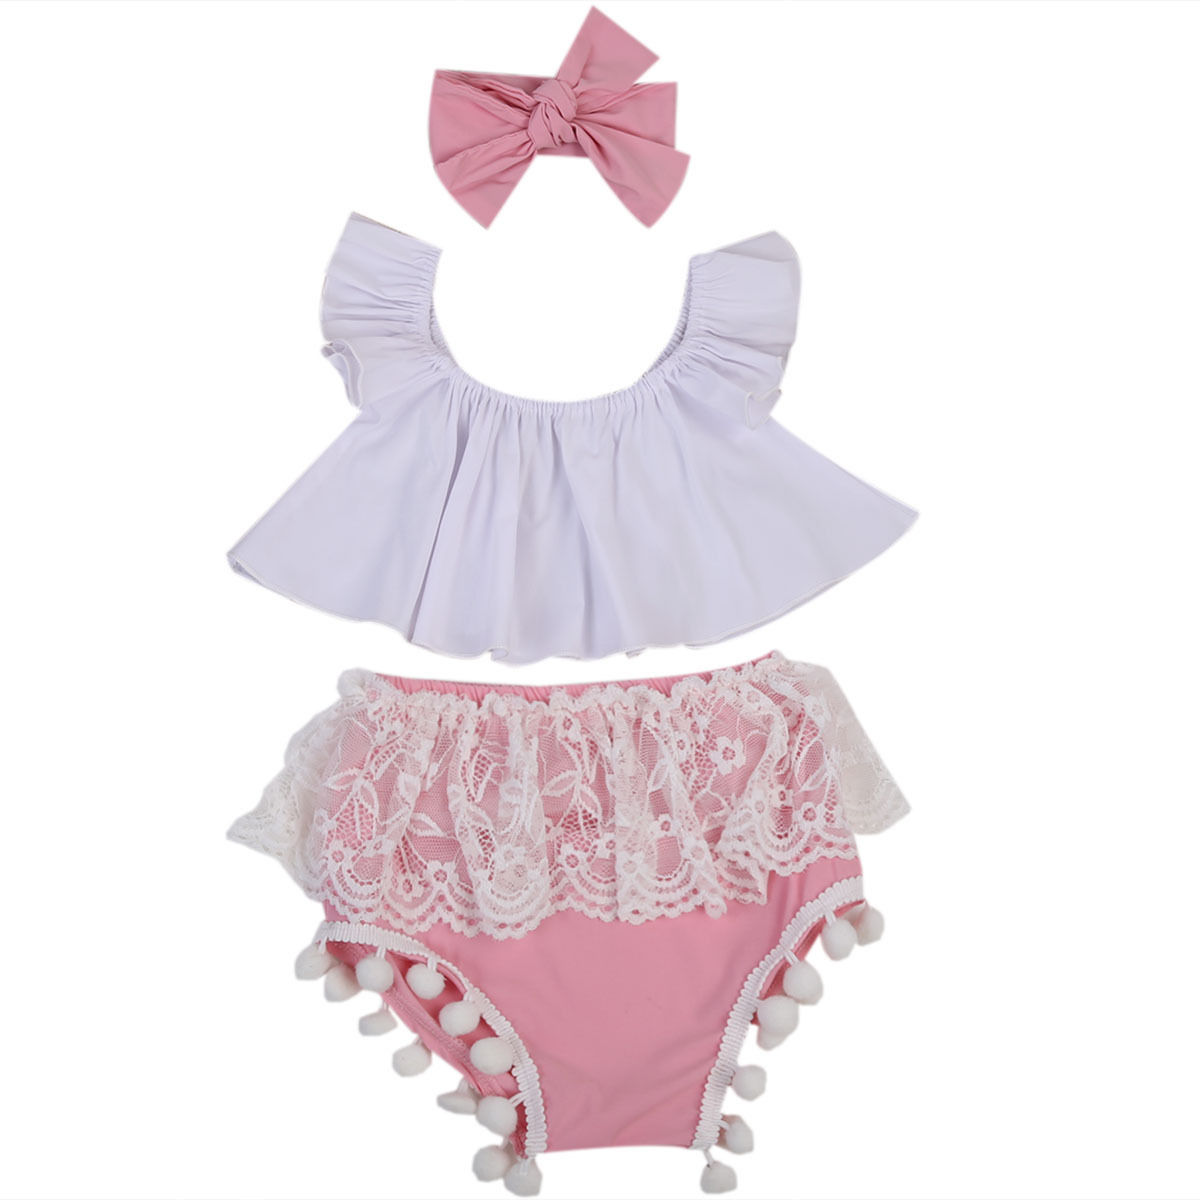 Summer Newborn Baby Girls Clothing Set Outfits Clothes Ruffle Tops+Pink Lace Shorts Headband 3PCS Cute Baby Girls Clothes Set